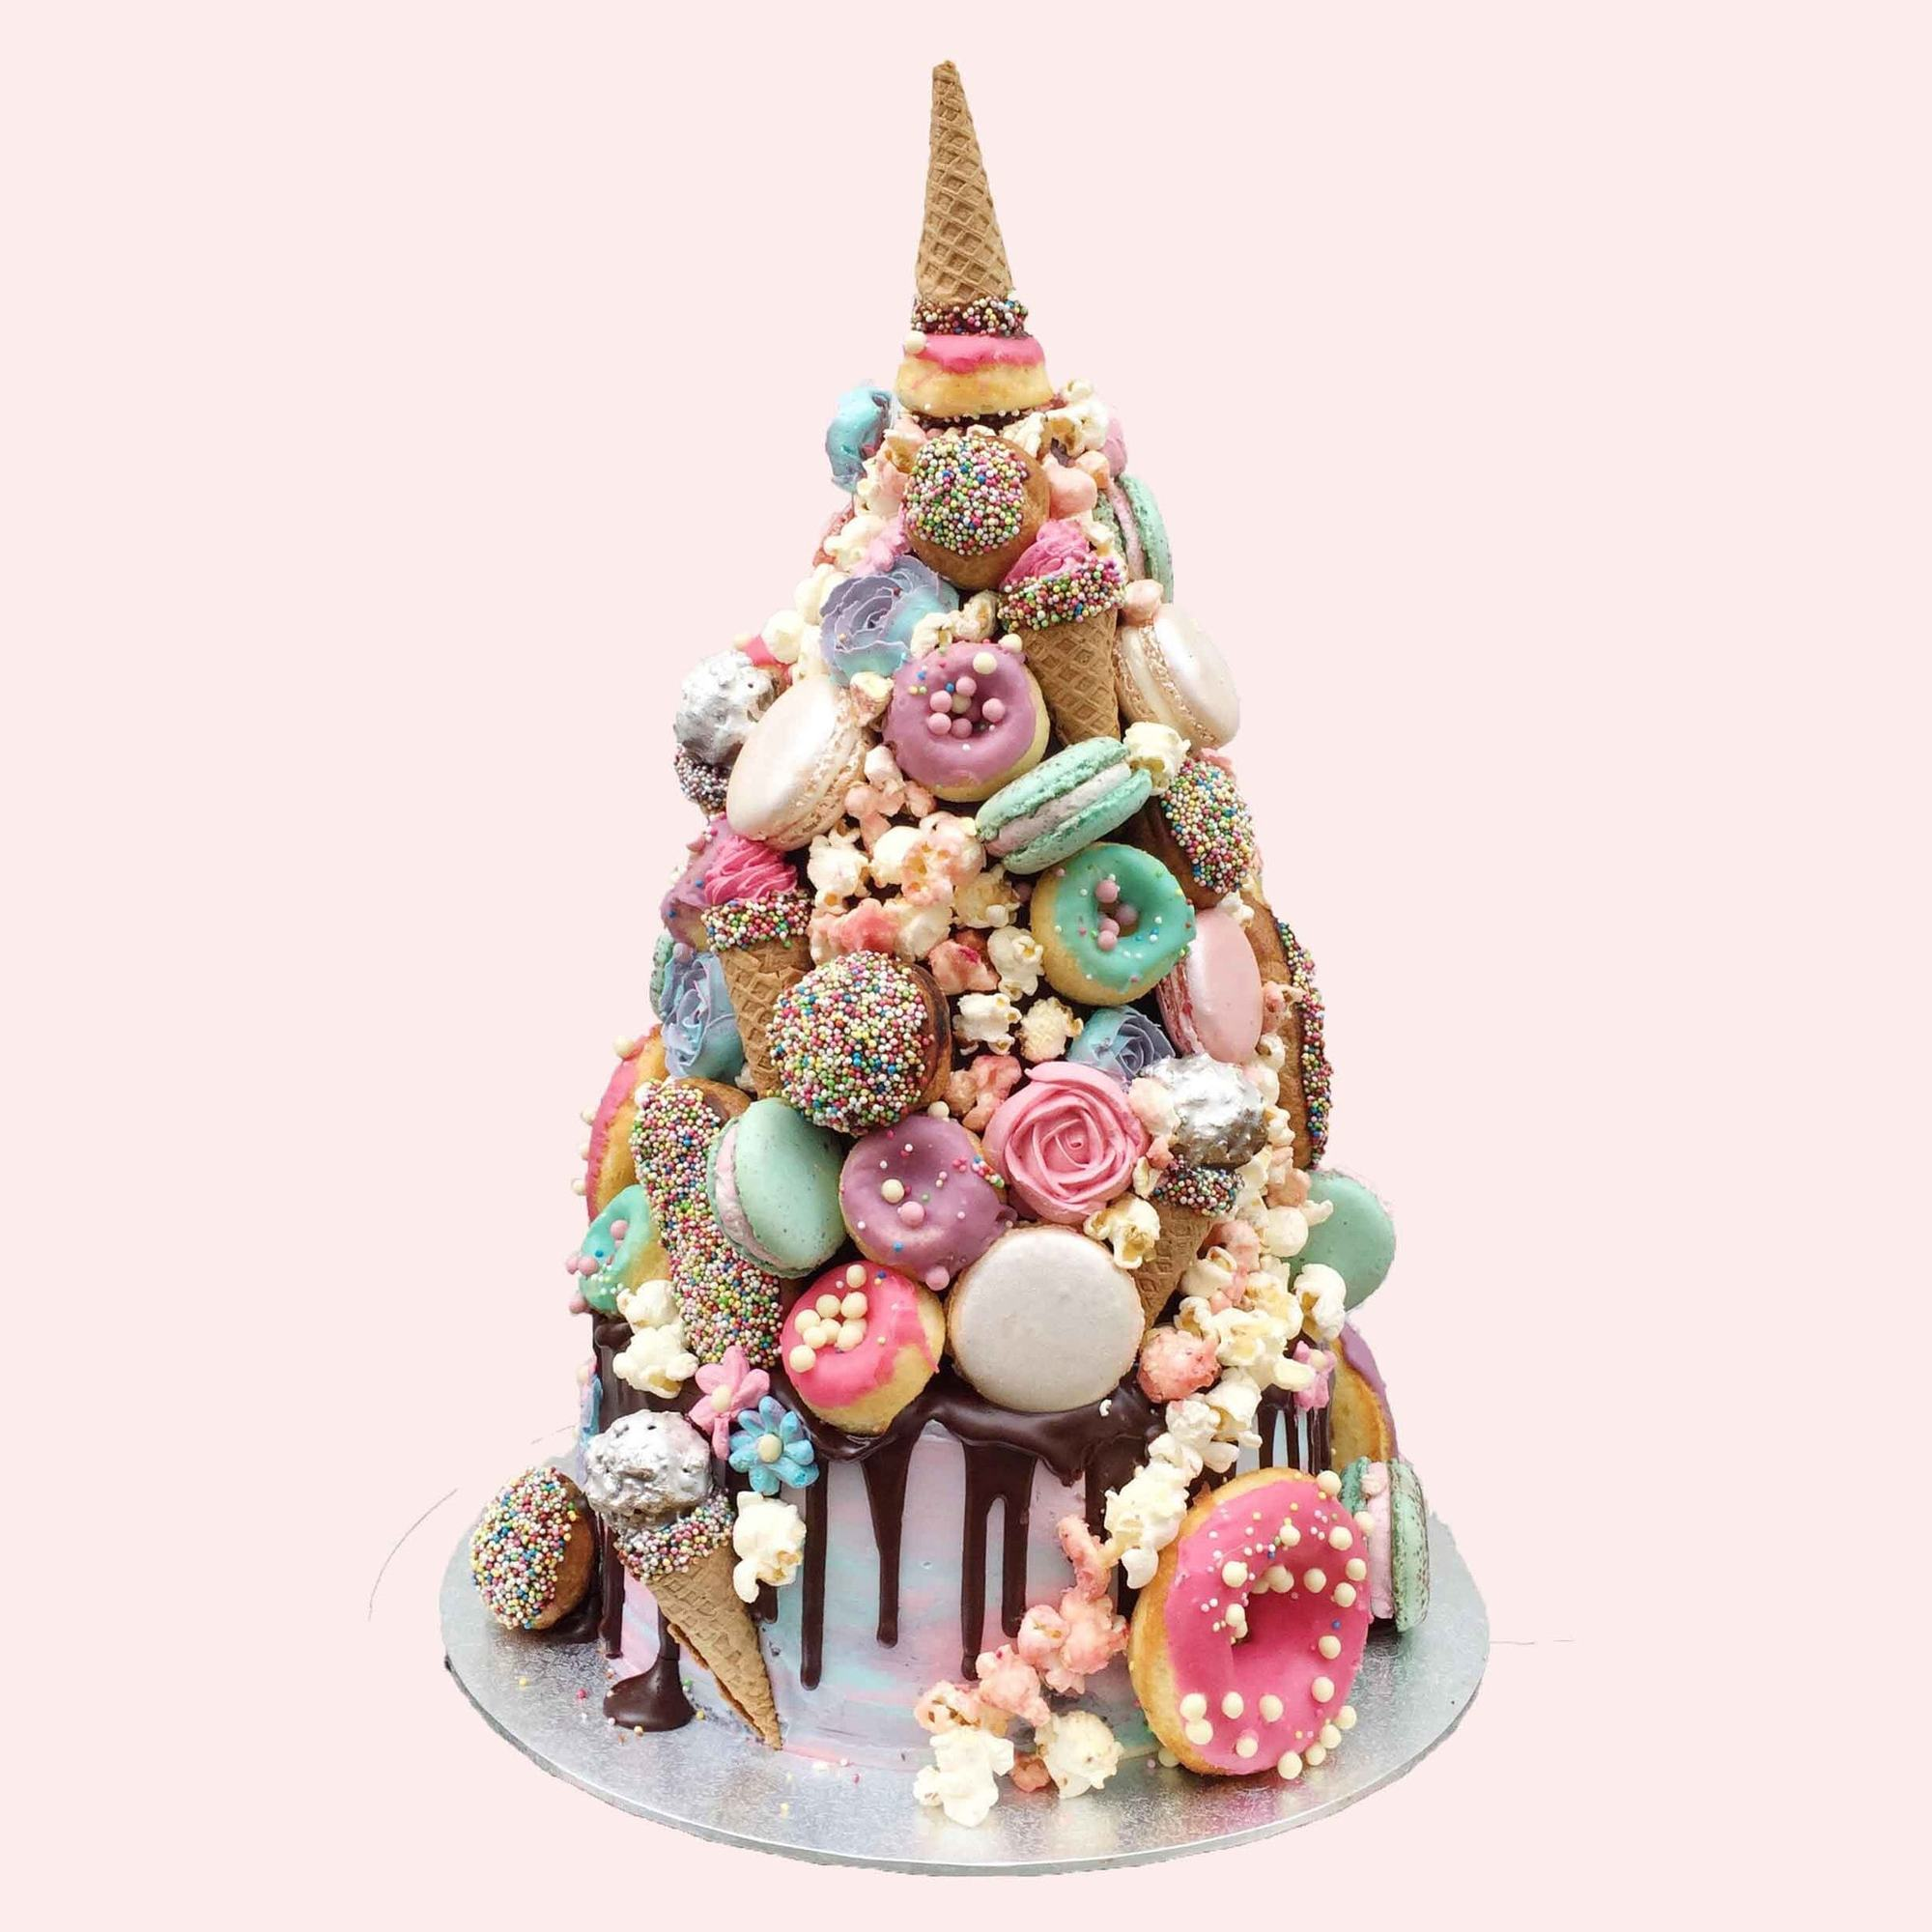 Anges de Sucre's croque en bouche with donuts, macarons, popcorn and a 'unicorn horn'